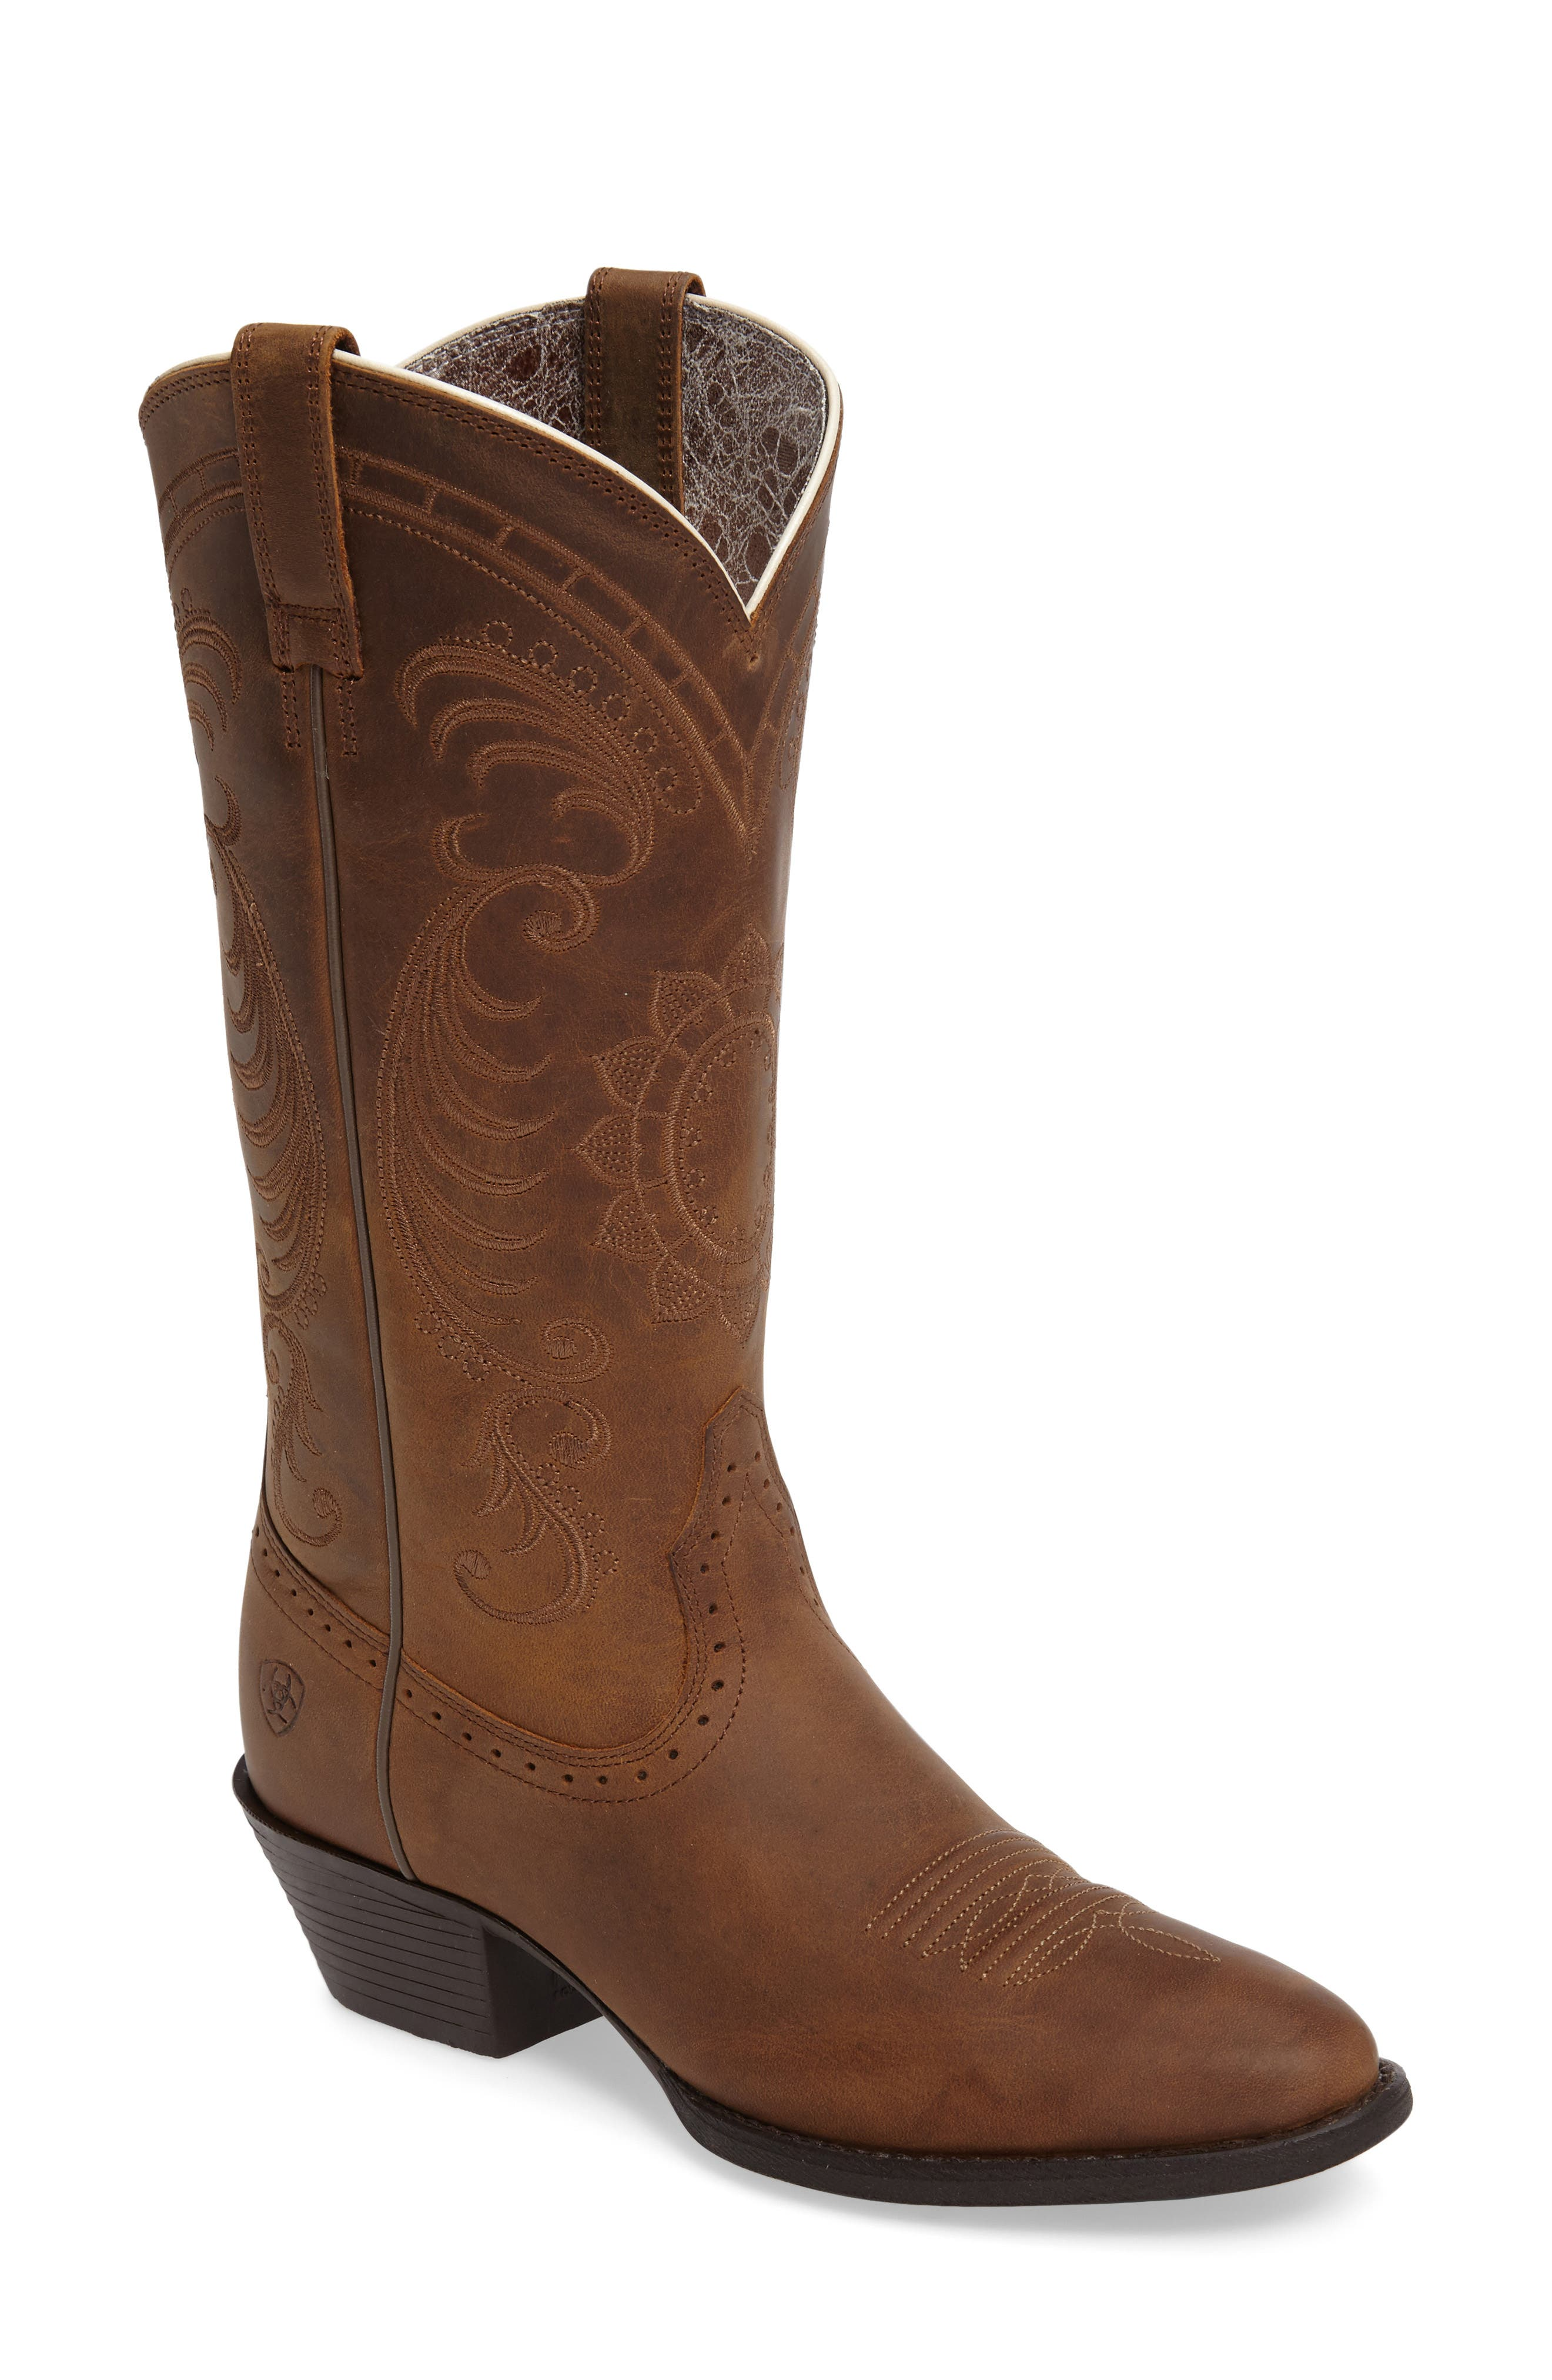 New West Collection - Magnolia Western Boot,                         Main,                         color, DISTRESSED BROWN LEATHER